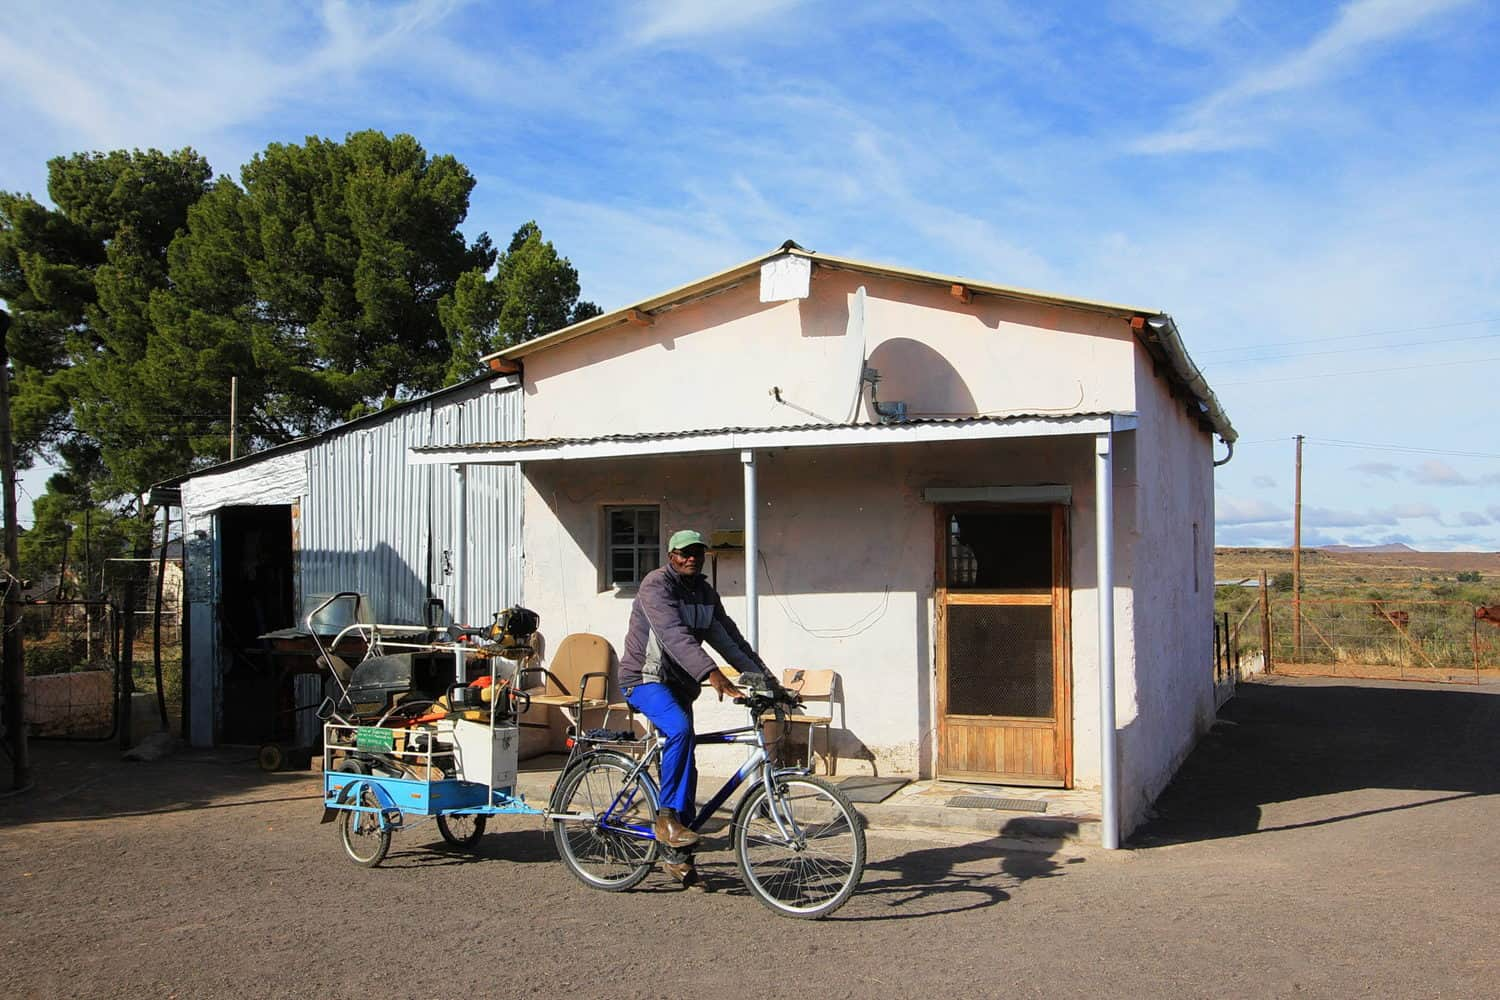 Max Ndamane, with the bicycle-drawn trailer he made for his gardening services in Richmond, in front of the old ramstal he turned into a home. Photo: Chris Marais